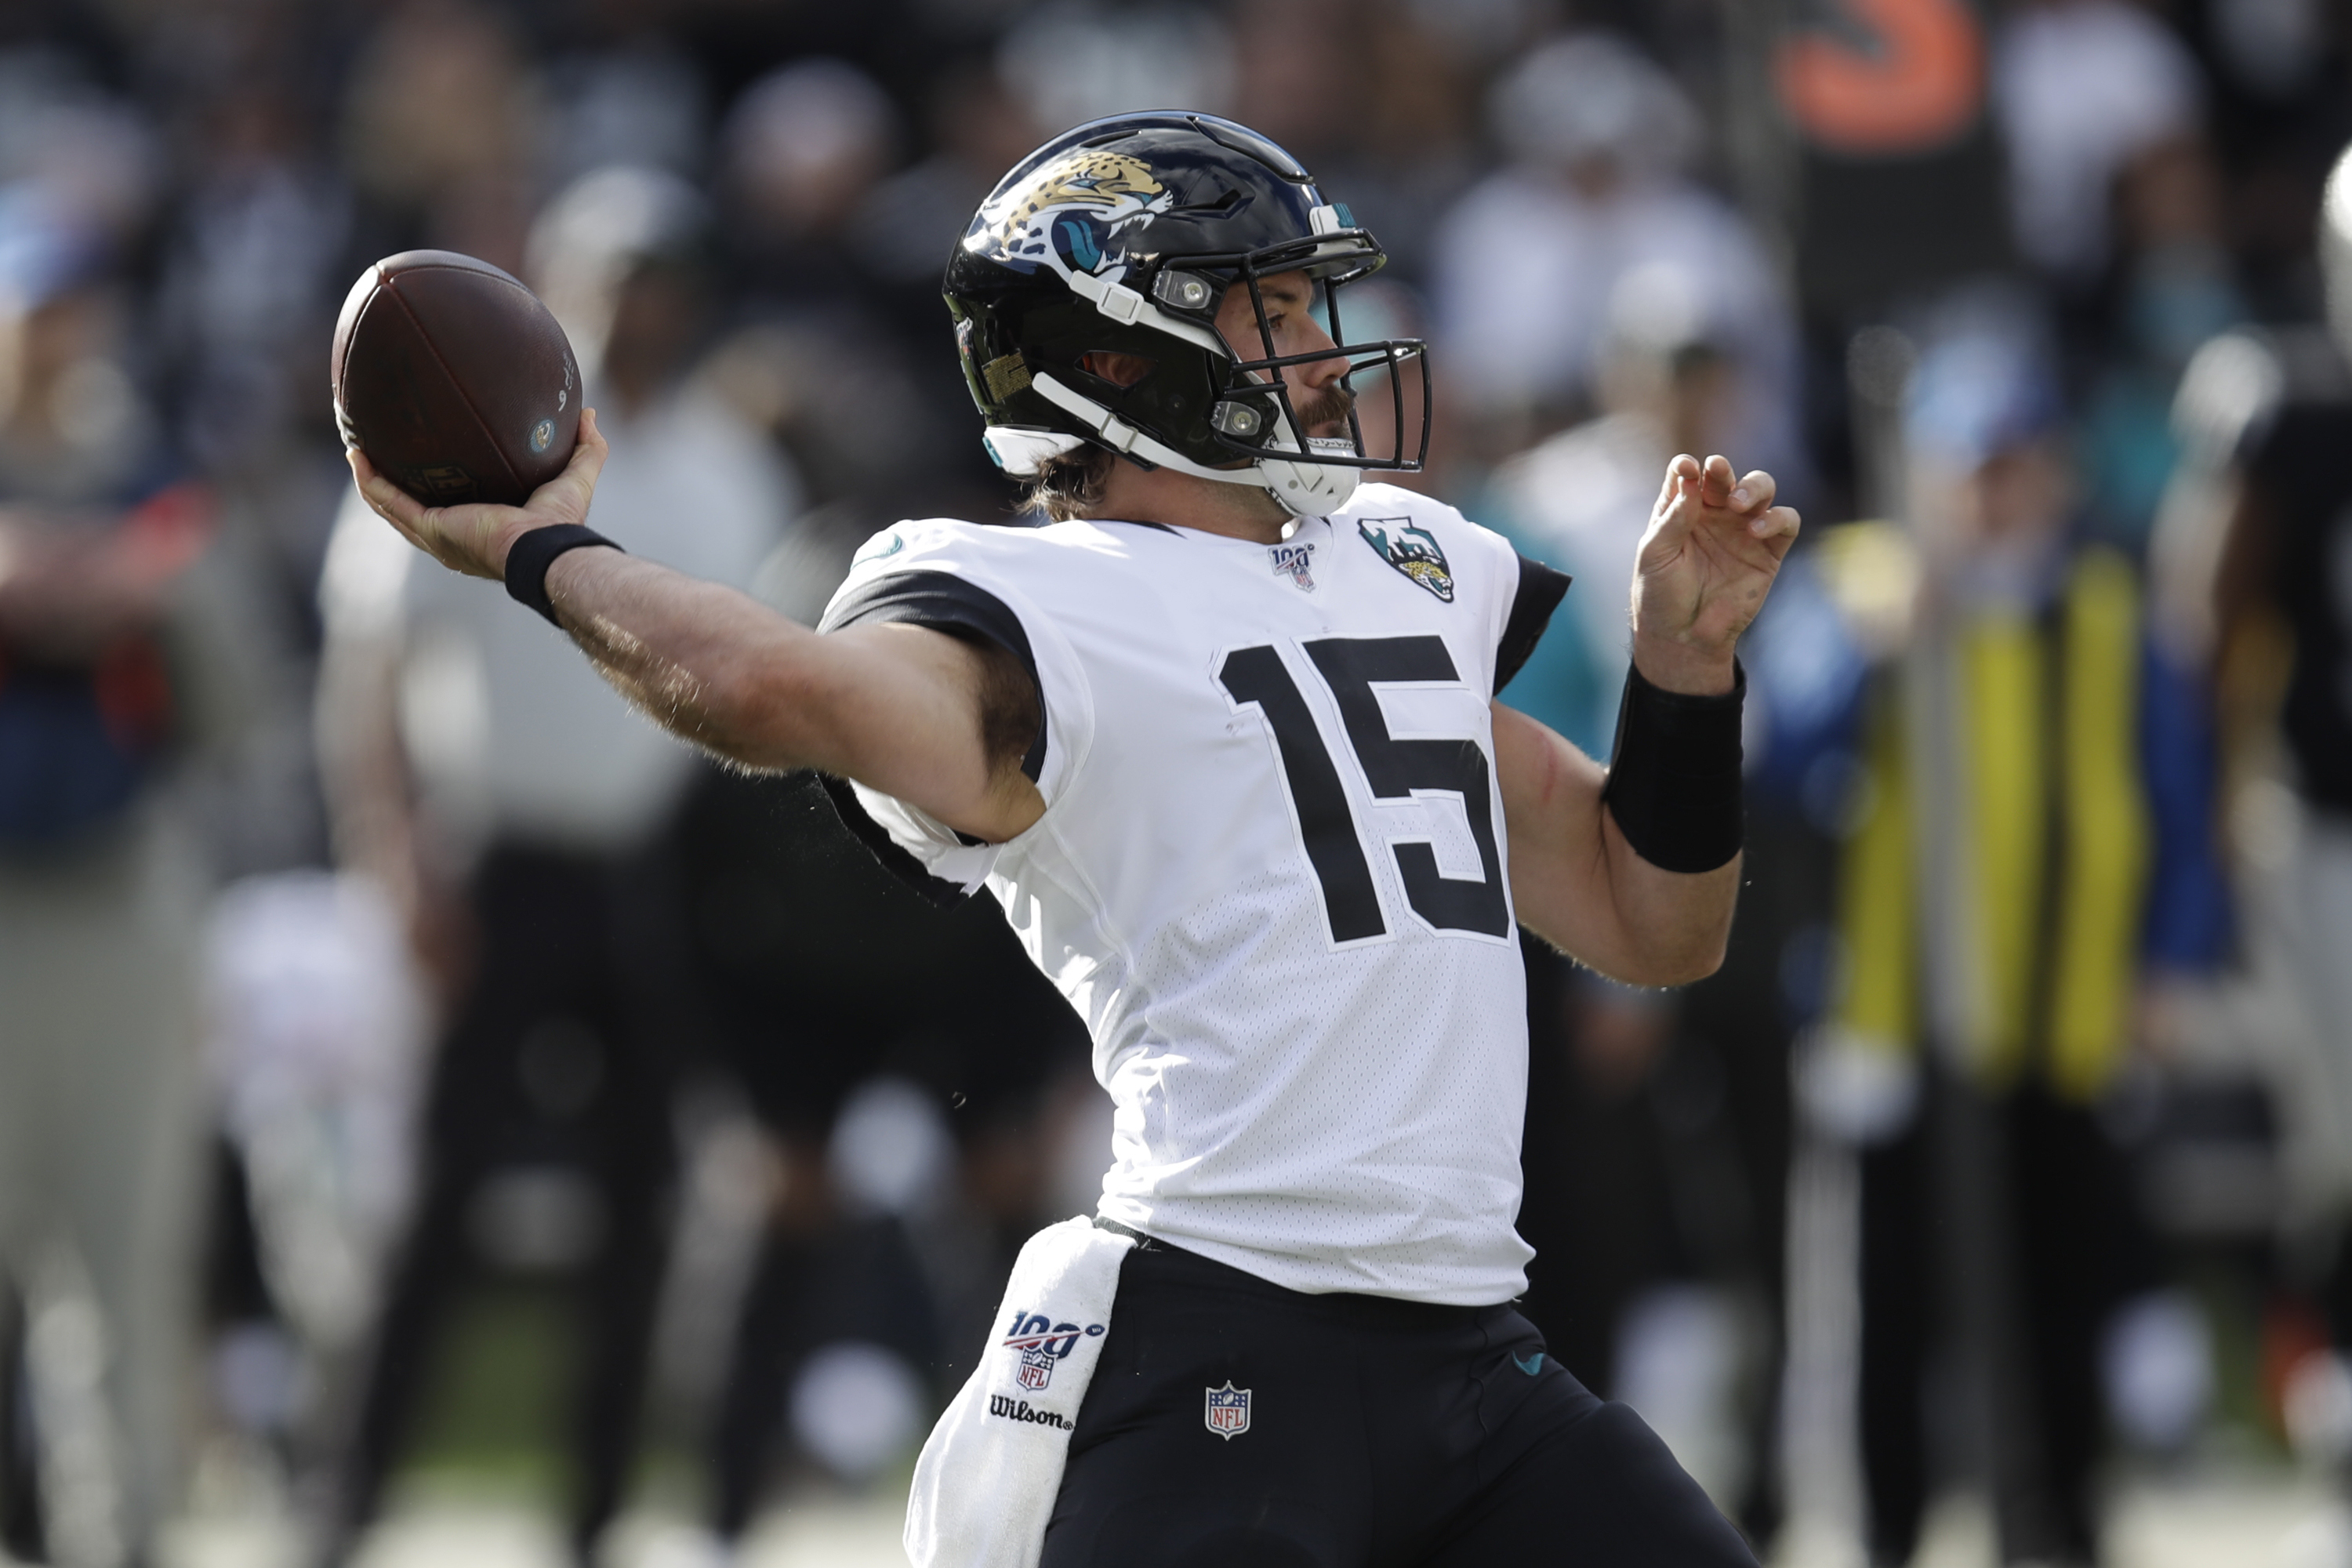 FANTASY PLAYS: Players to add include Minshew, Fitzpatrick